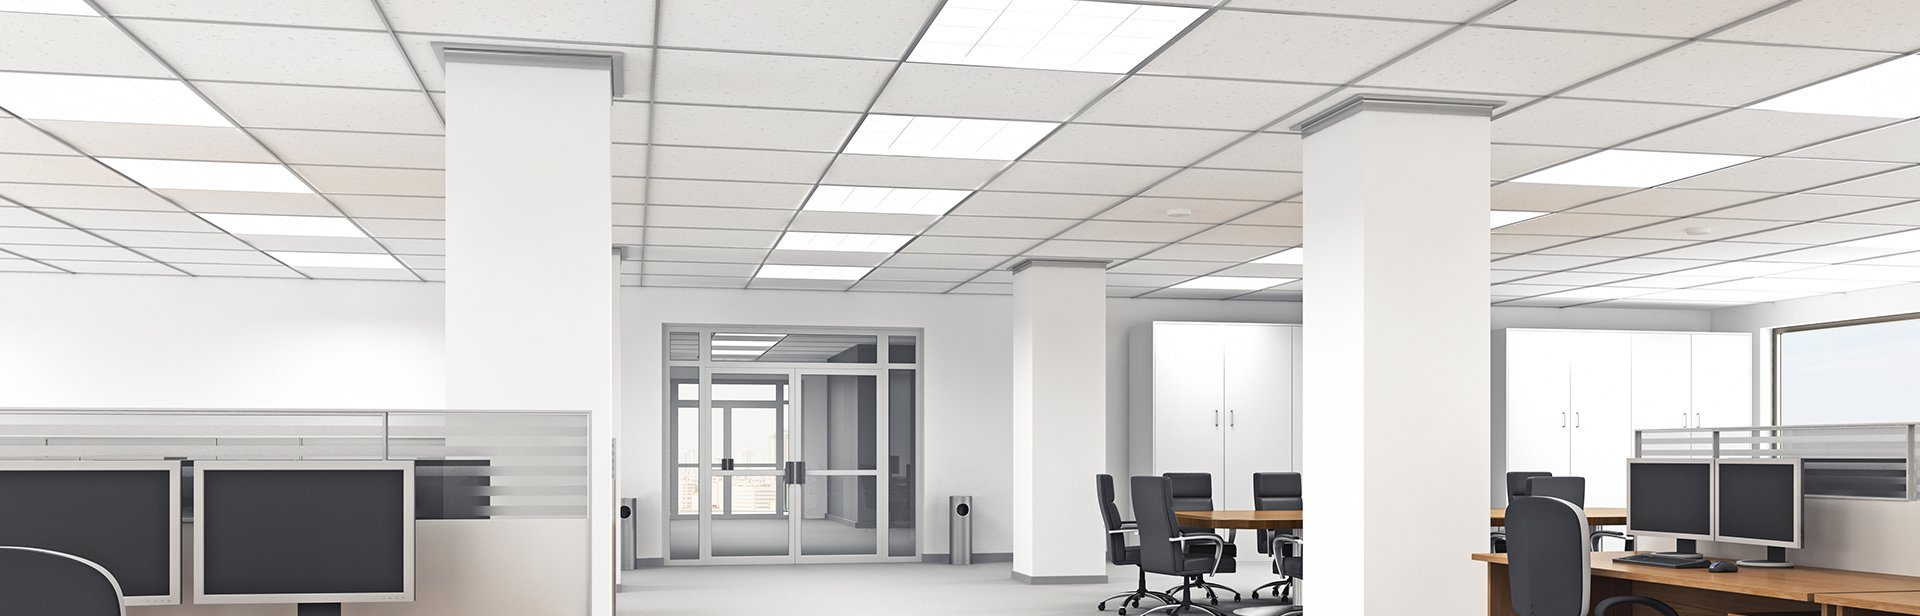 fitters cis interiors ceiling img ceilings office bedford suspended contractors installers